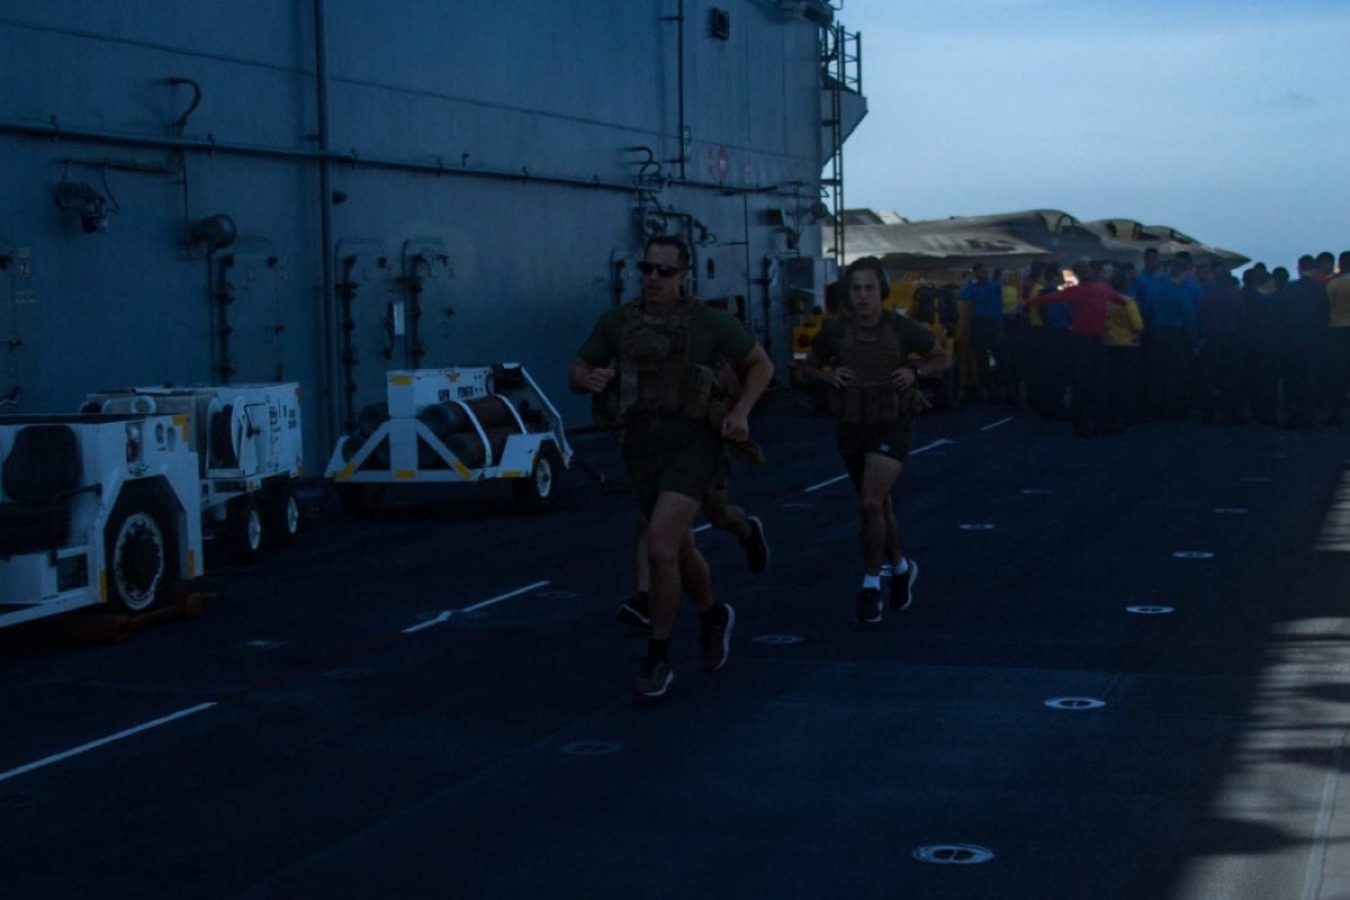 Marines with Battalion Landing Team, 1st Battalion, 5th Marines, 31st Marine Expeditionary Unit (MEU), participate in a 'Murph' workout challenge in memory of Gunnery Sgt. Diego Pongo and Capt. Moises Navas aboard amphibious assault ship USS America (LHA 6). (U.S. Marine Corps photo by Lance Cpl. Kolby Leger)